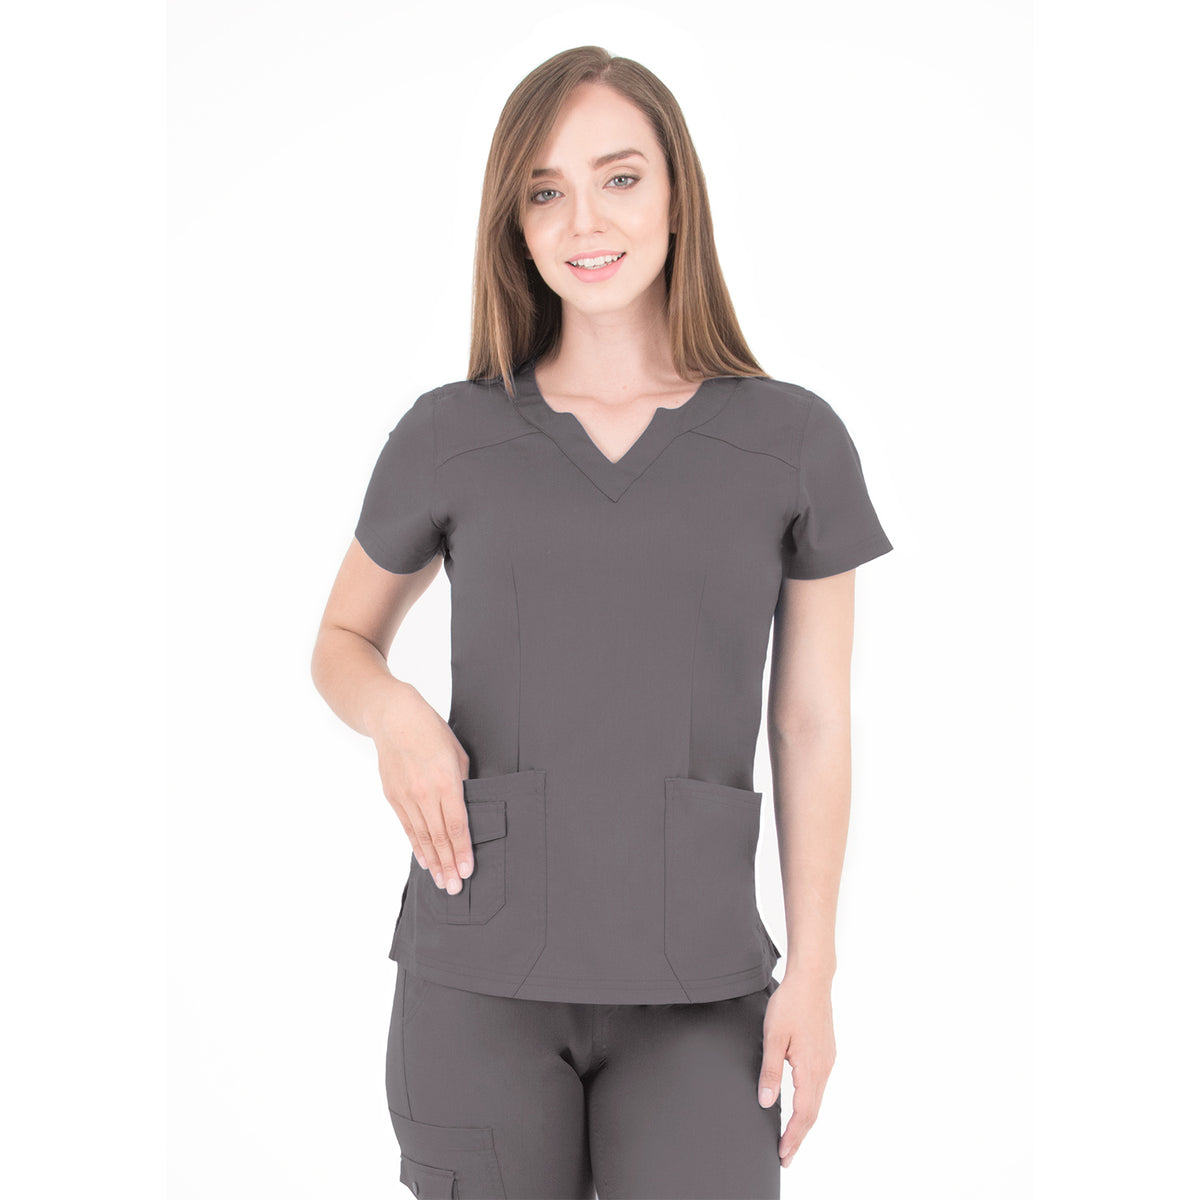 Women's Ergo 2.0 Scallop Neckline Top